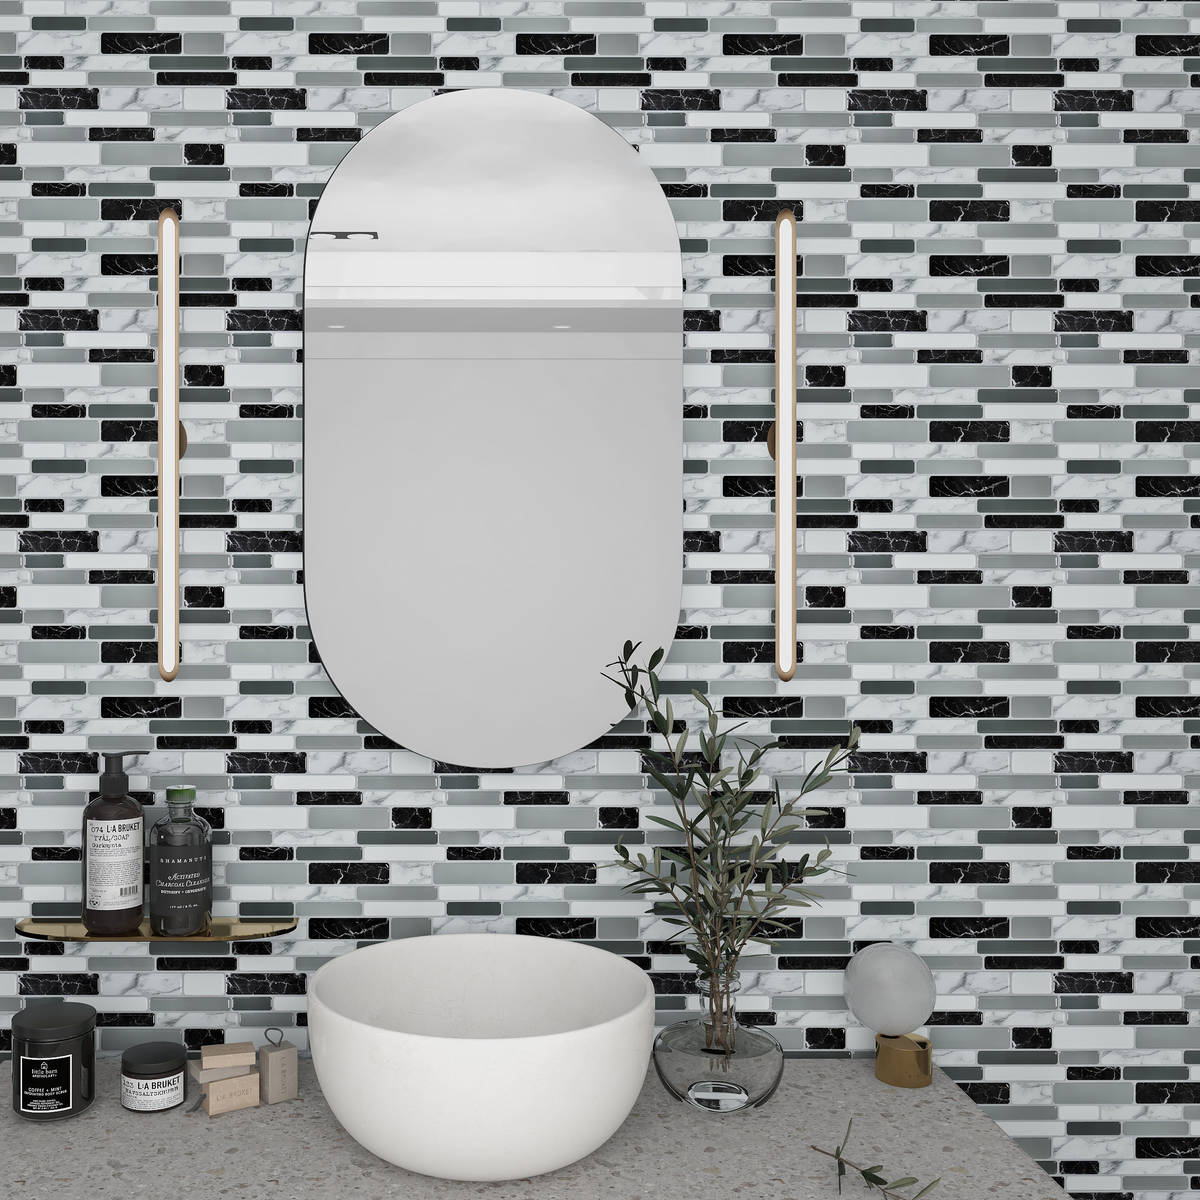 Art3d peel-and-stick tiles are bacteria- and mold-resistant and perfect bathroom backsplashes. ...